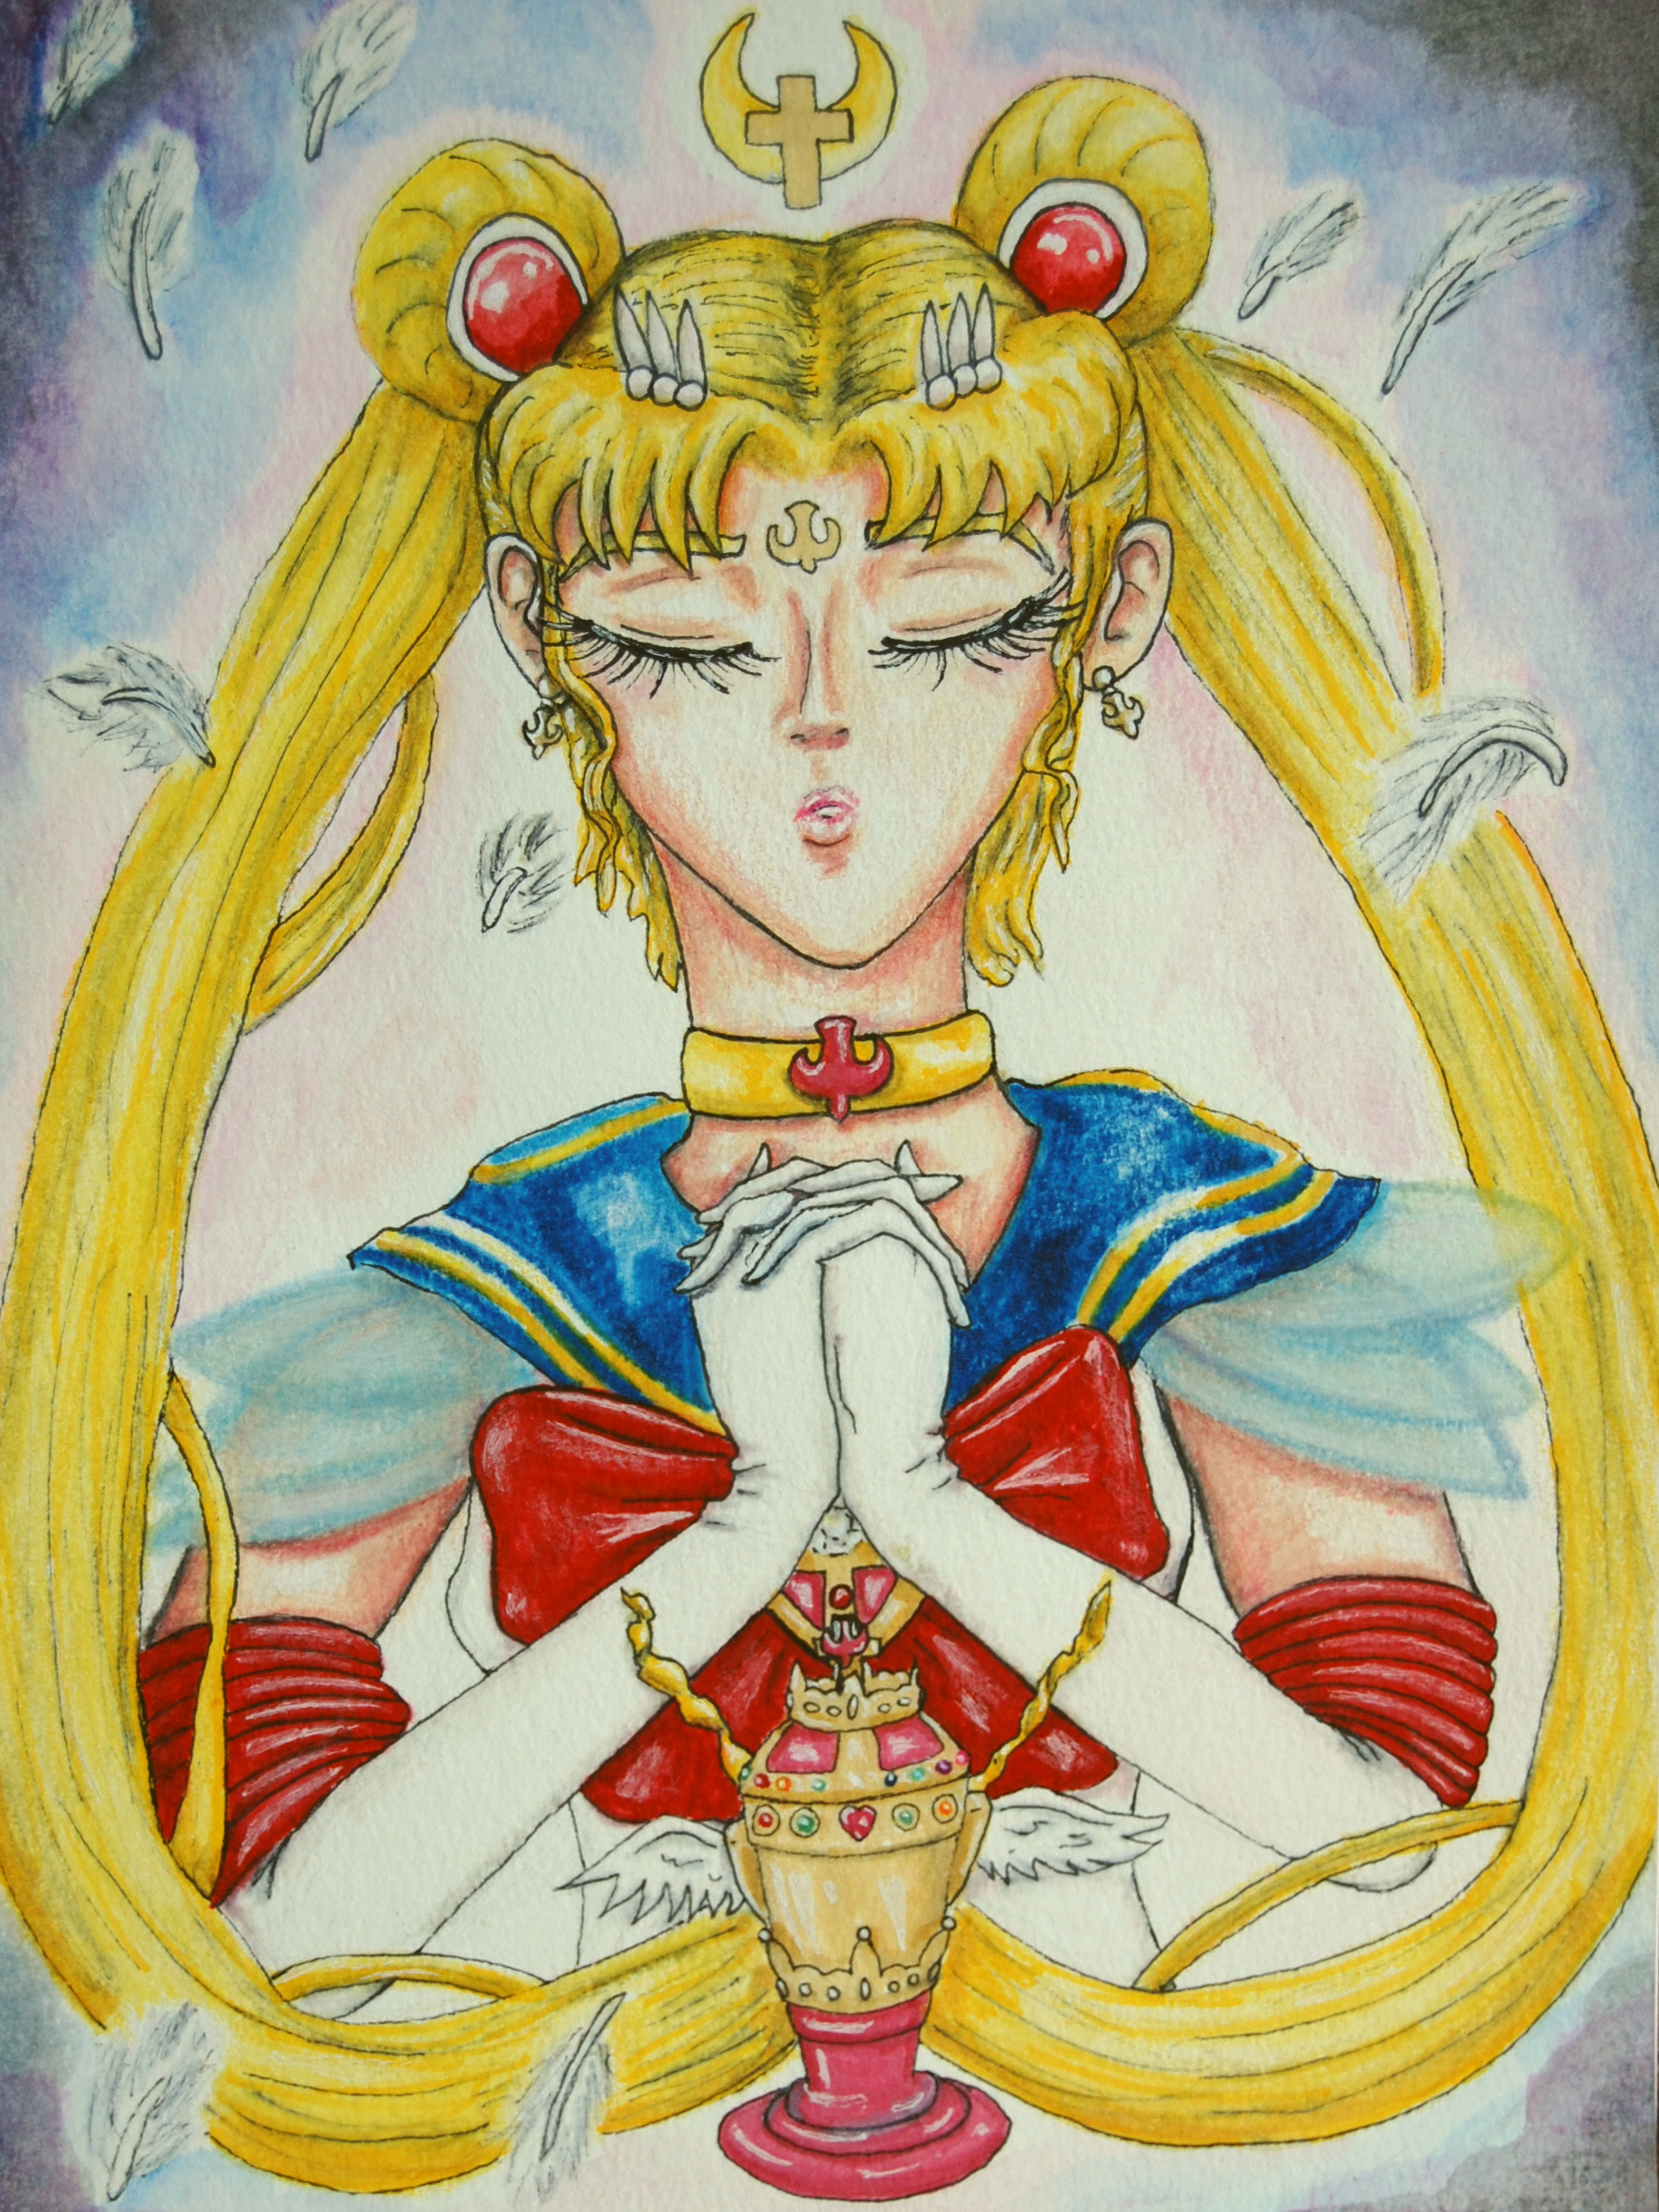 Holy Sailor Moon